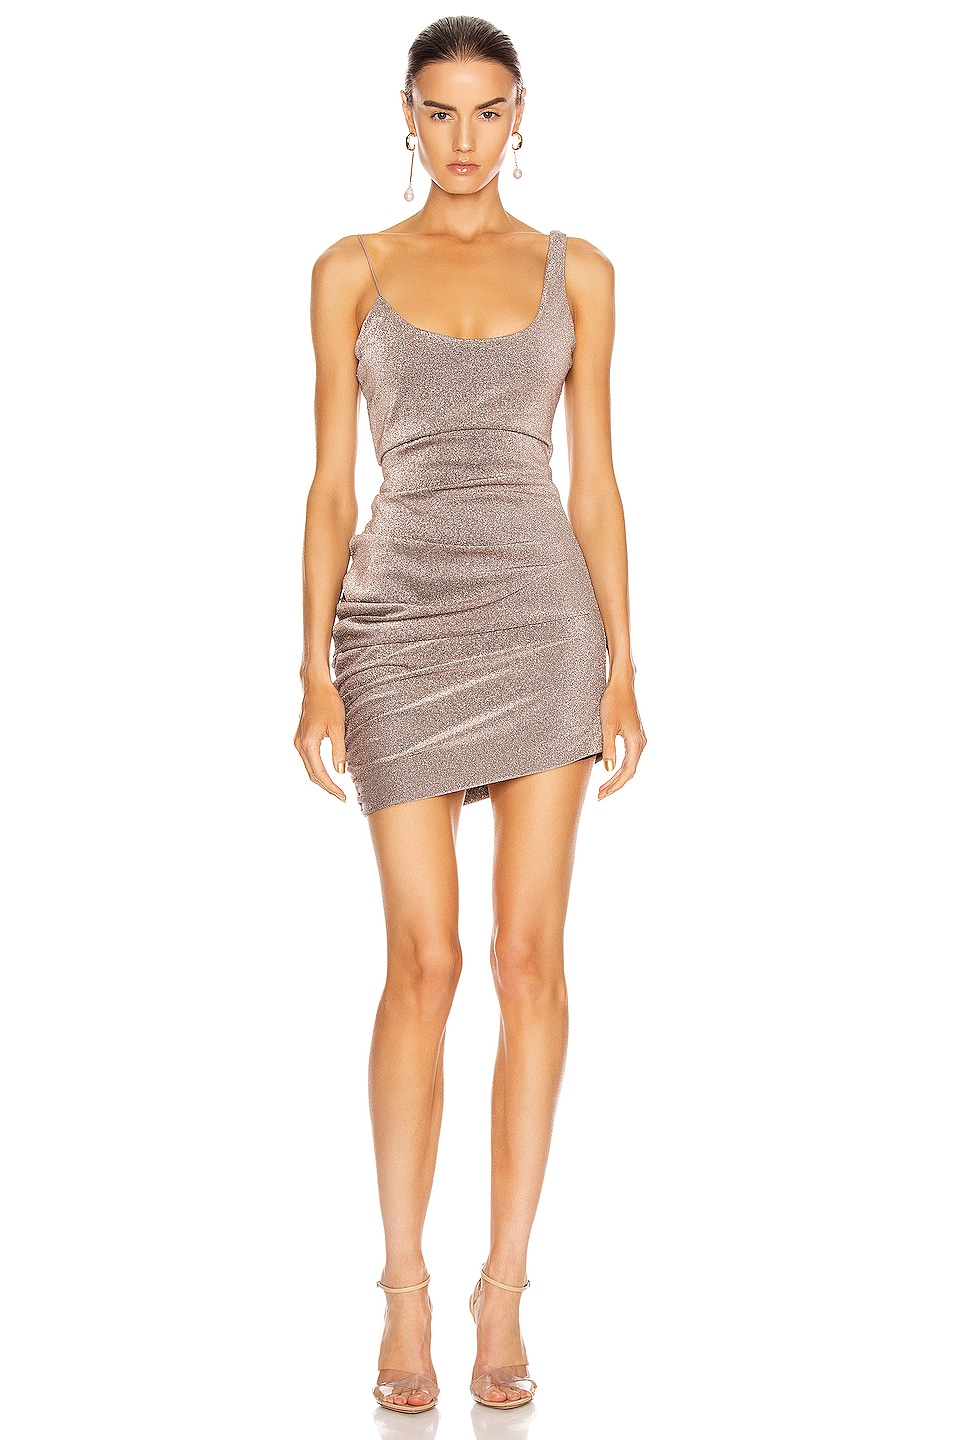 Image 1 of ALIX NYC Emmons Dress in Mercury Glitter